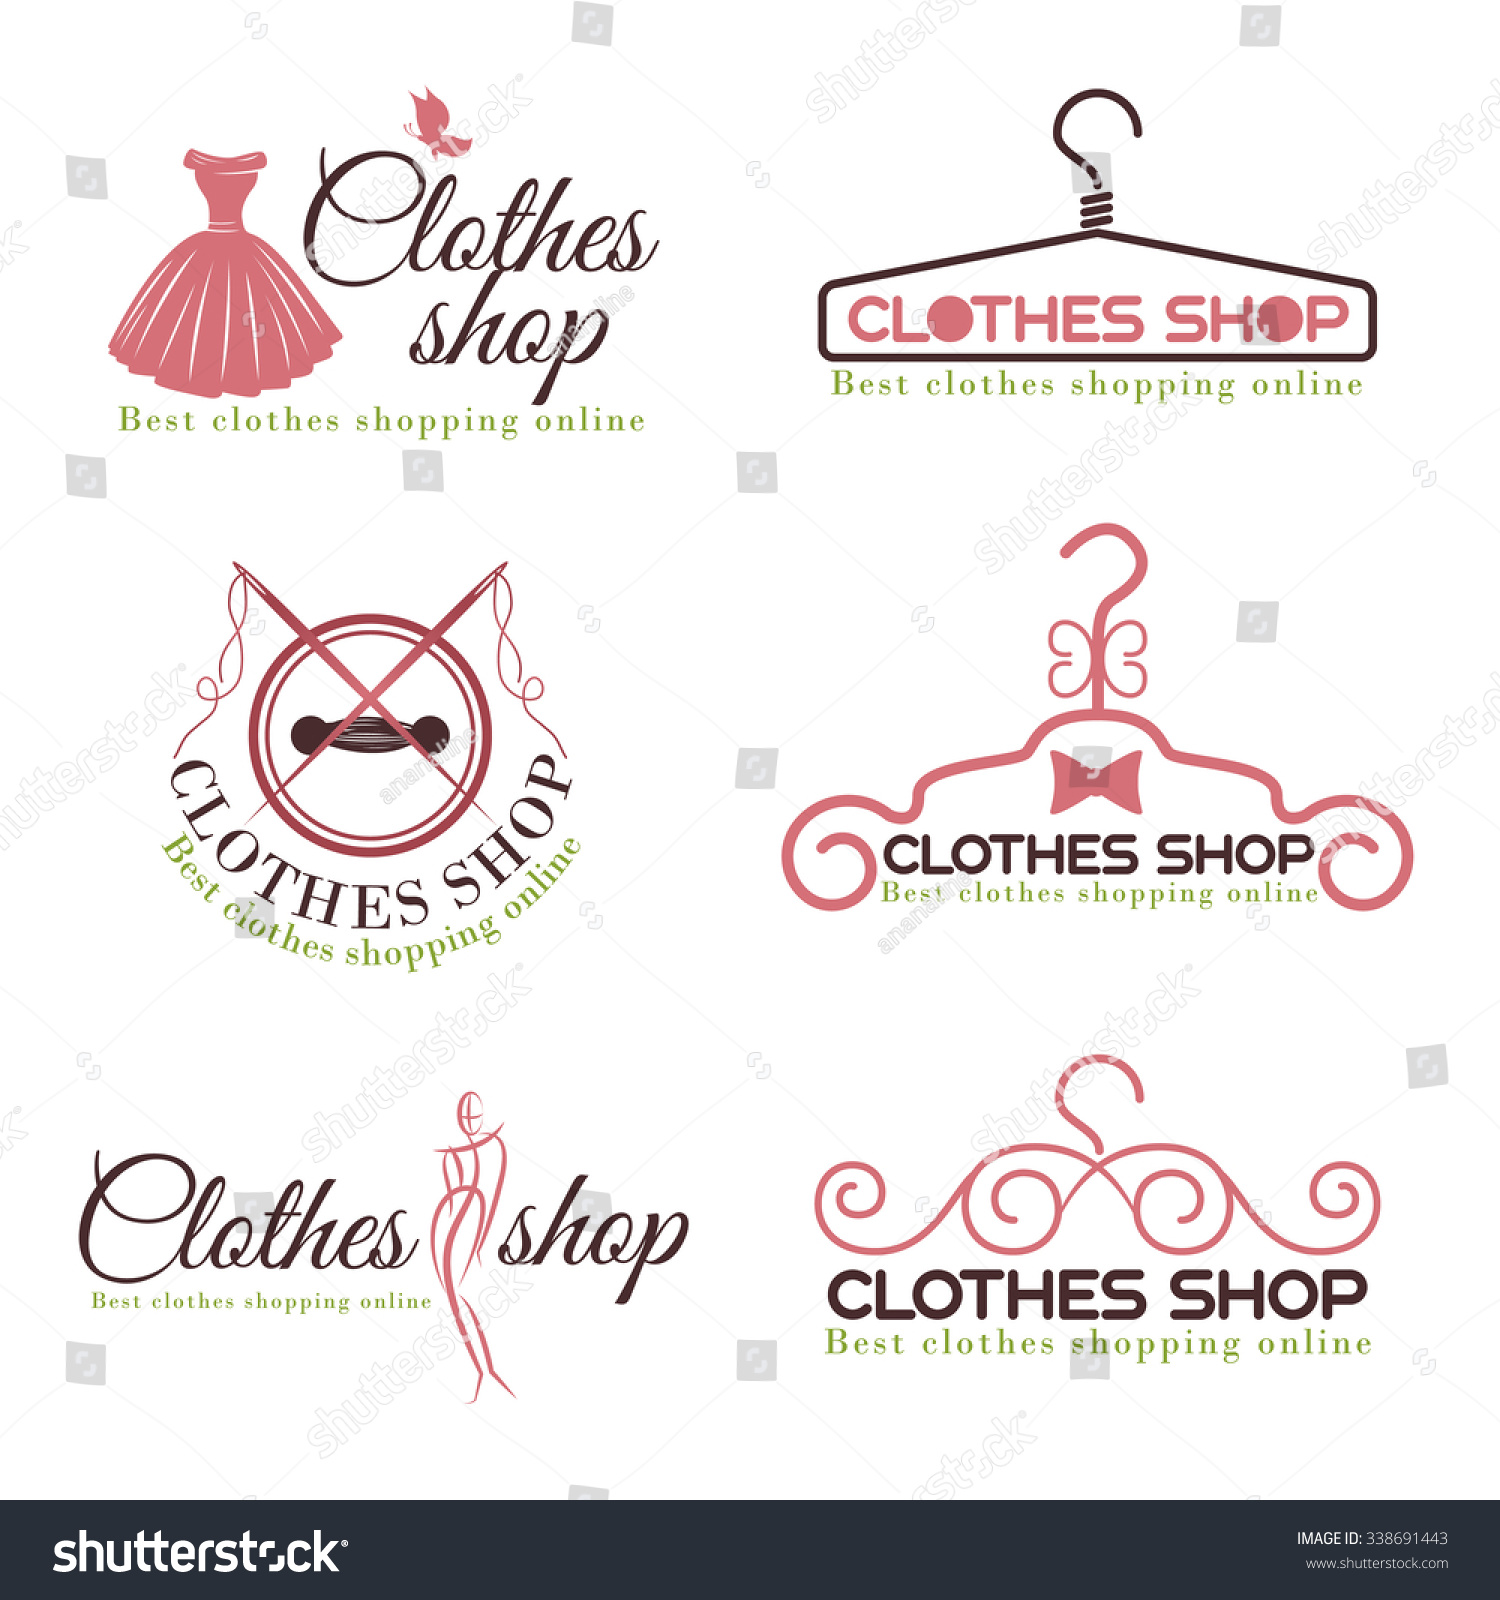 Royalty Free Clothes Shop Fashion Logo Vector Set Design 338691443 Stock Vector Imageric Com